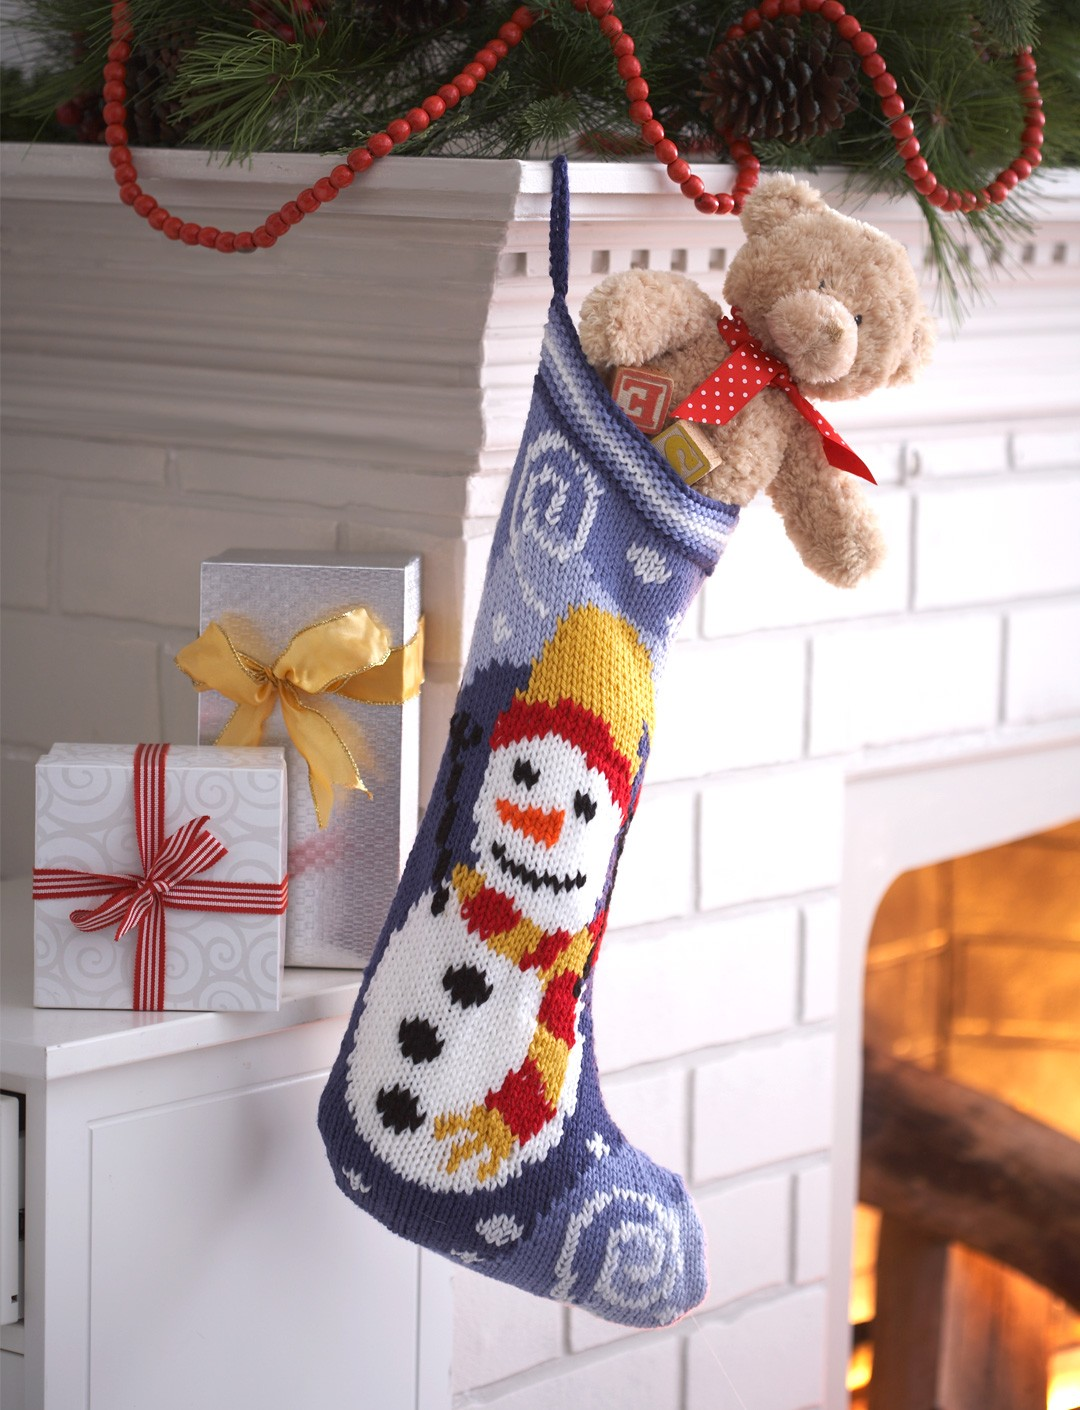 Bernat snowman stocking knit pattern yarnspirations snowman stocking bankloansurffo Gallery